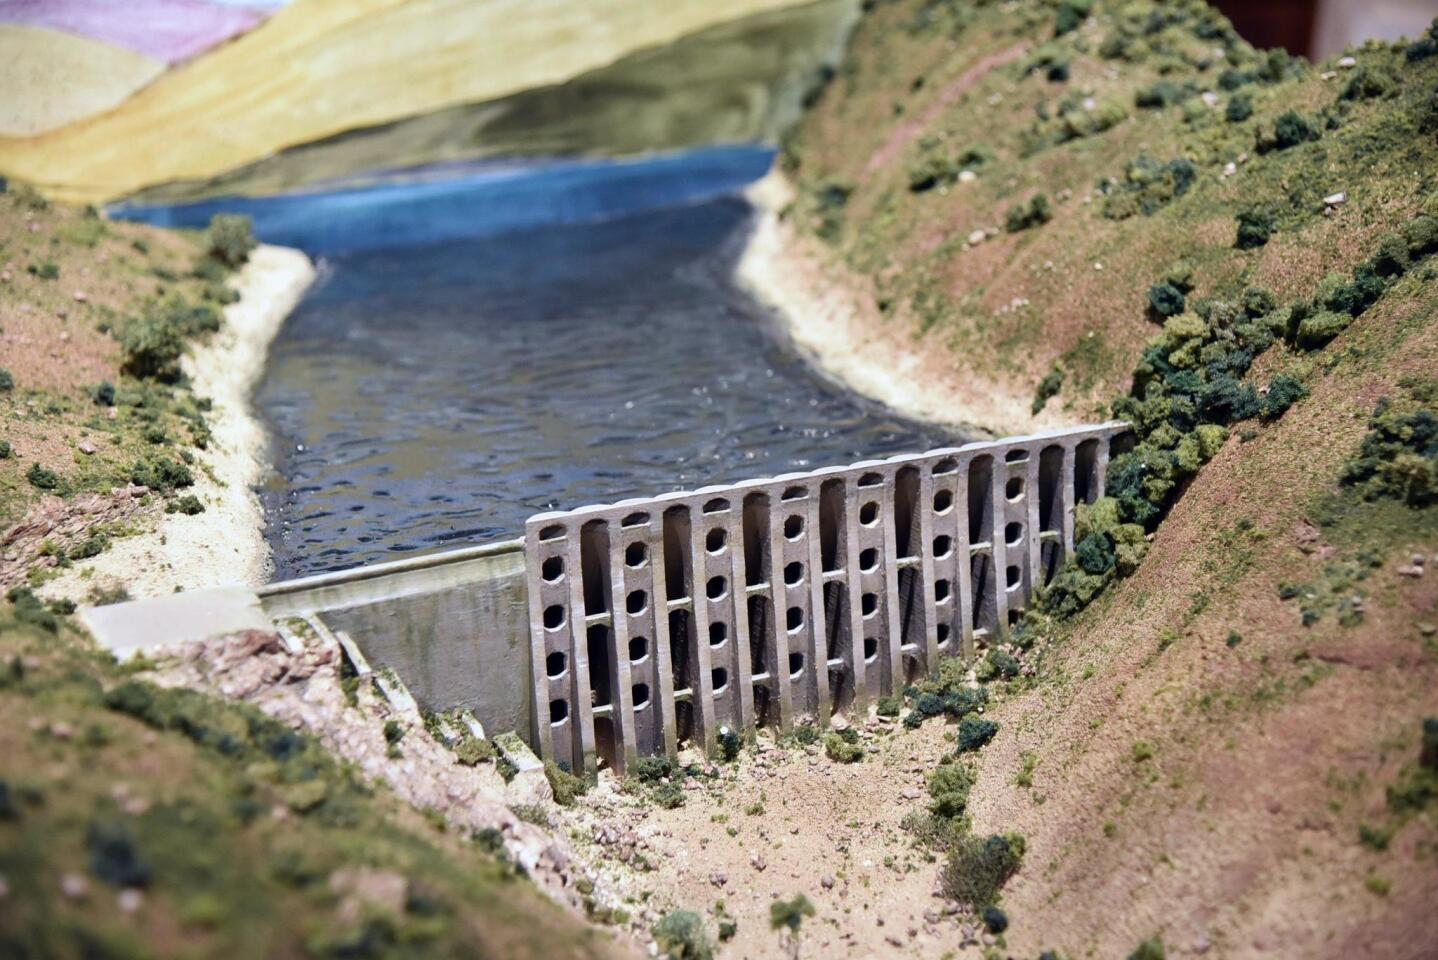 The dam parts were fabricated using 3D printing technology